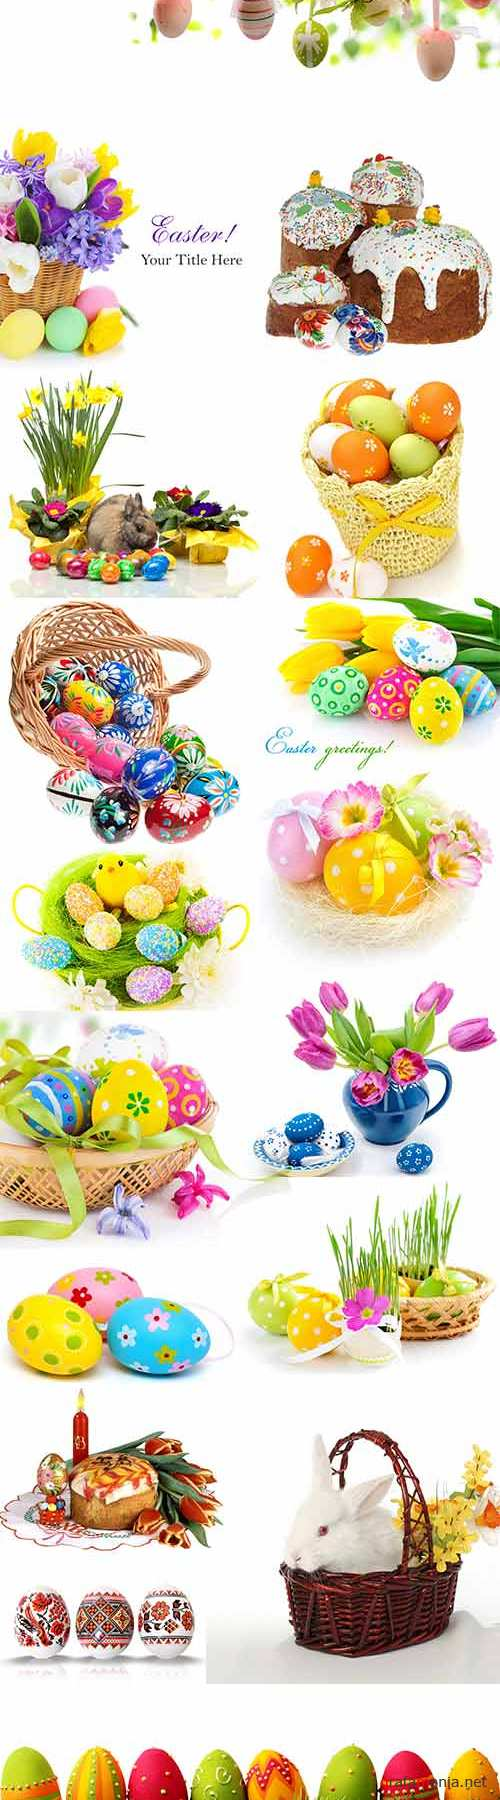 Happy Easter - 7